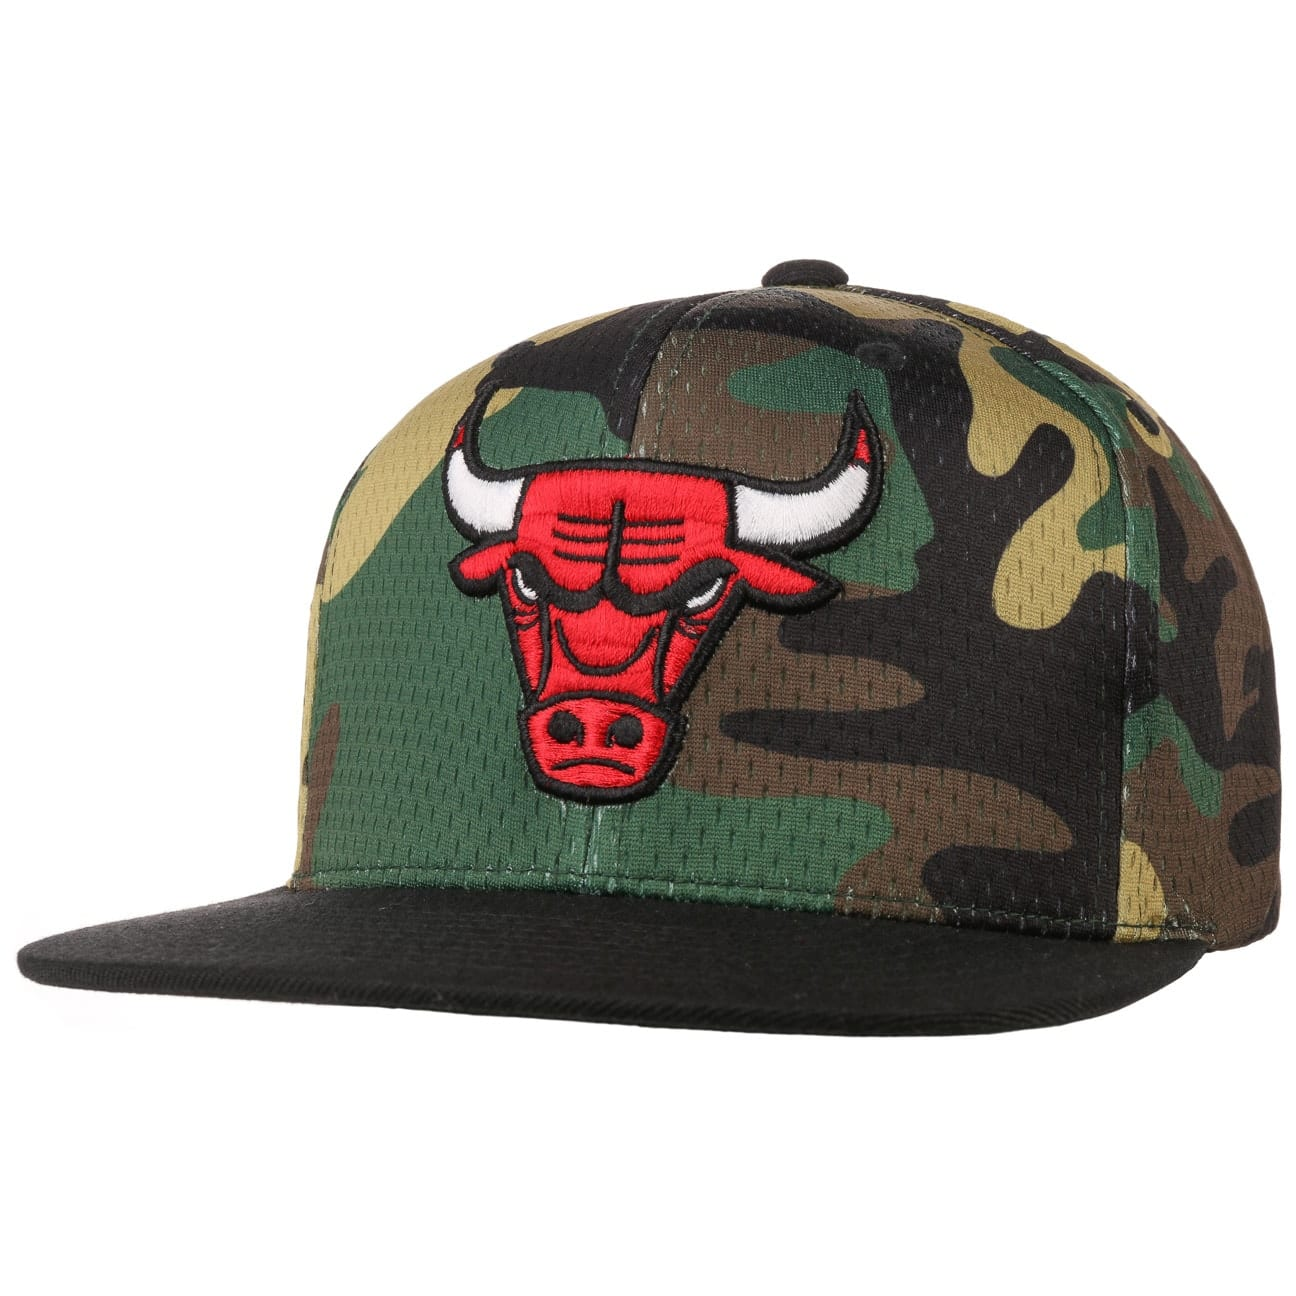 Casquette Woodland Camo Bulls by Mitchell & Ness  casquette snapback